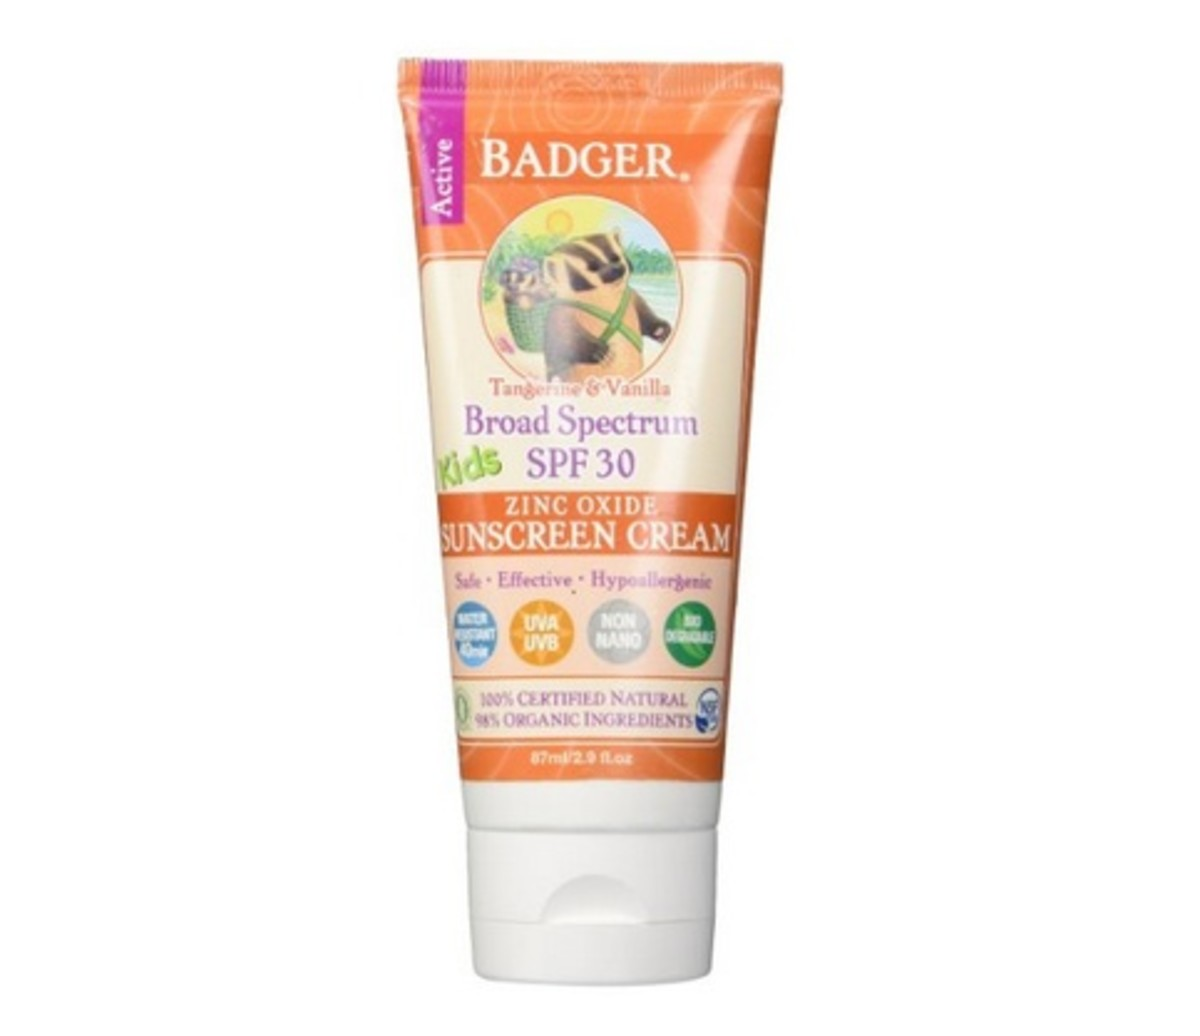 Badger Kids sunscreen